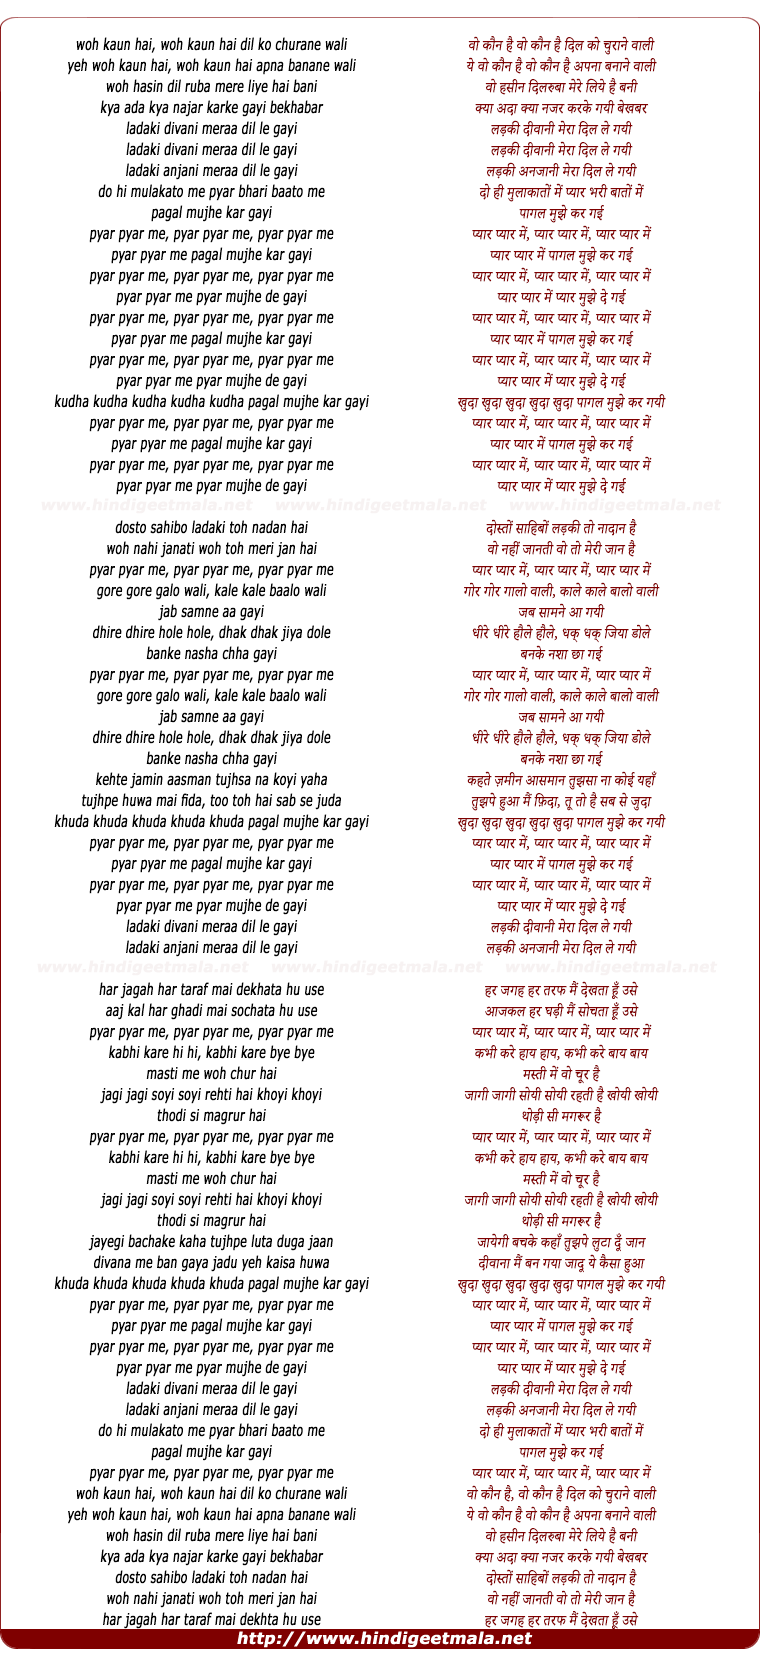 lyrics of song Pyar Pyar Me